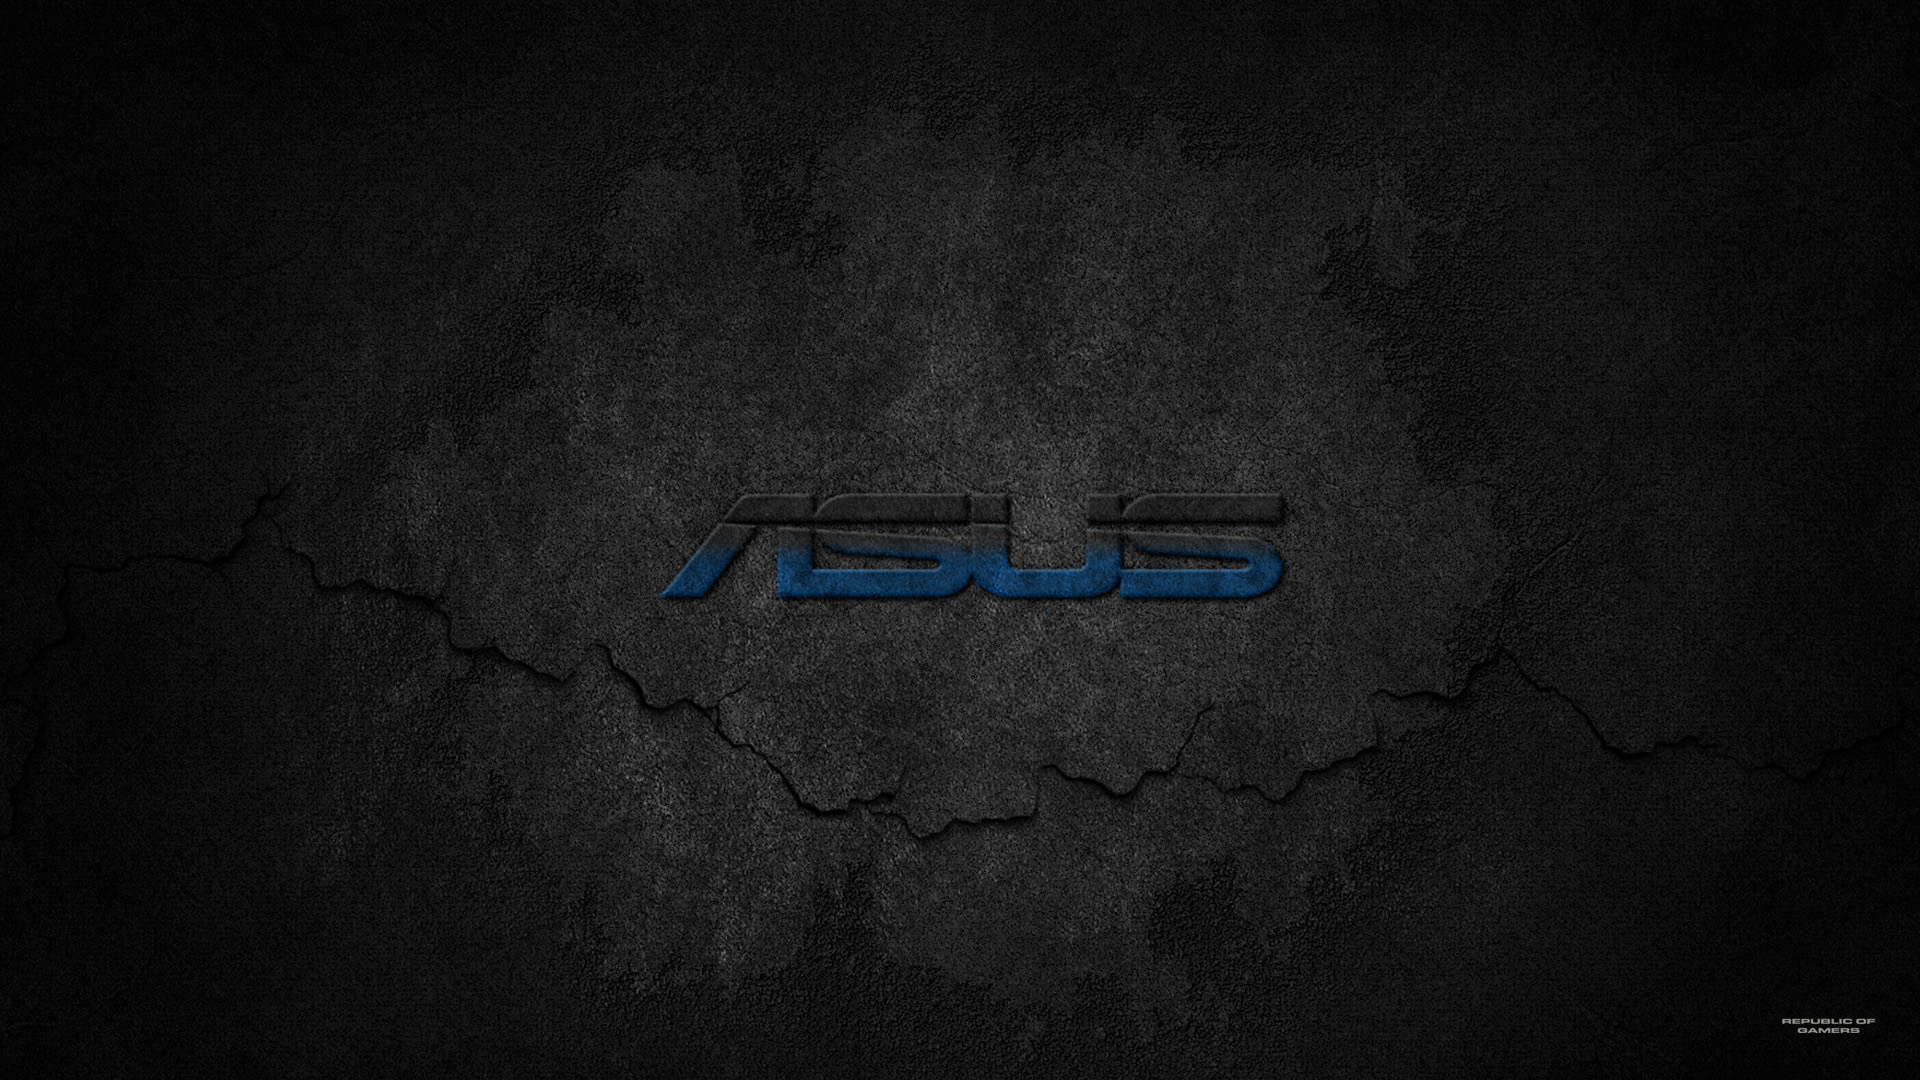 Premium Asus Wallpaper by cybacreep